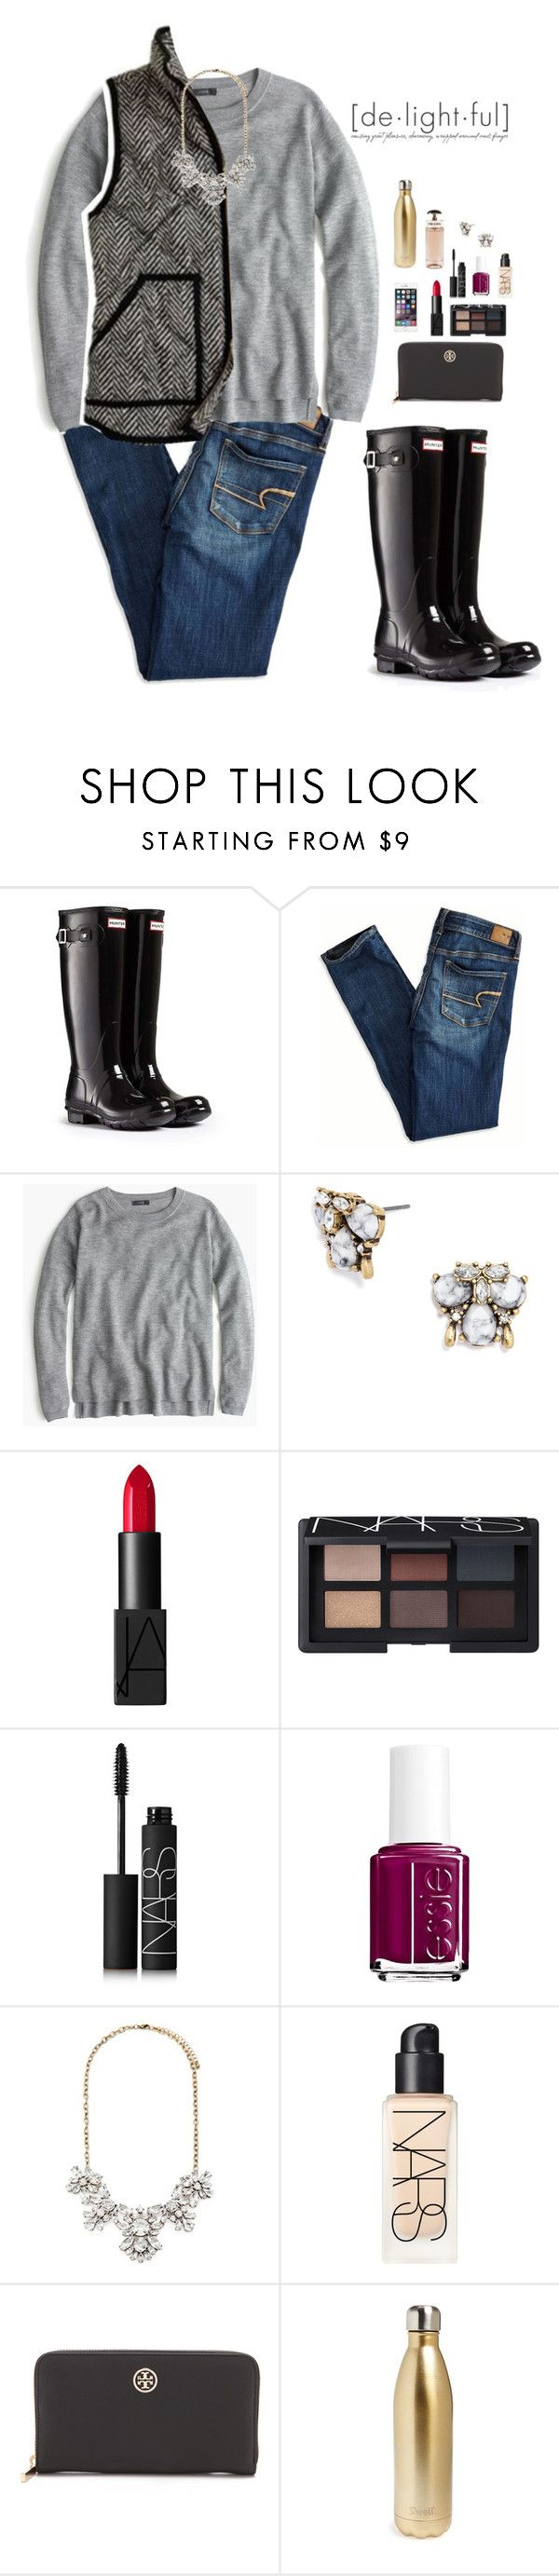 """H is for... hunters"" by emiliaa06 ❤ liked on Polyvore featuring Hunter, American Eagle Outfitters, J.Crew, BaubleBar, NARS Cosmetics, Essie, Forever 21, Tory Burch, S'well and Prada"